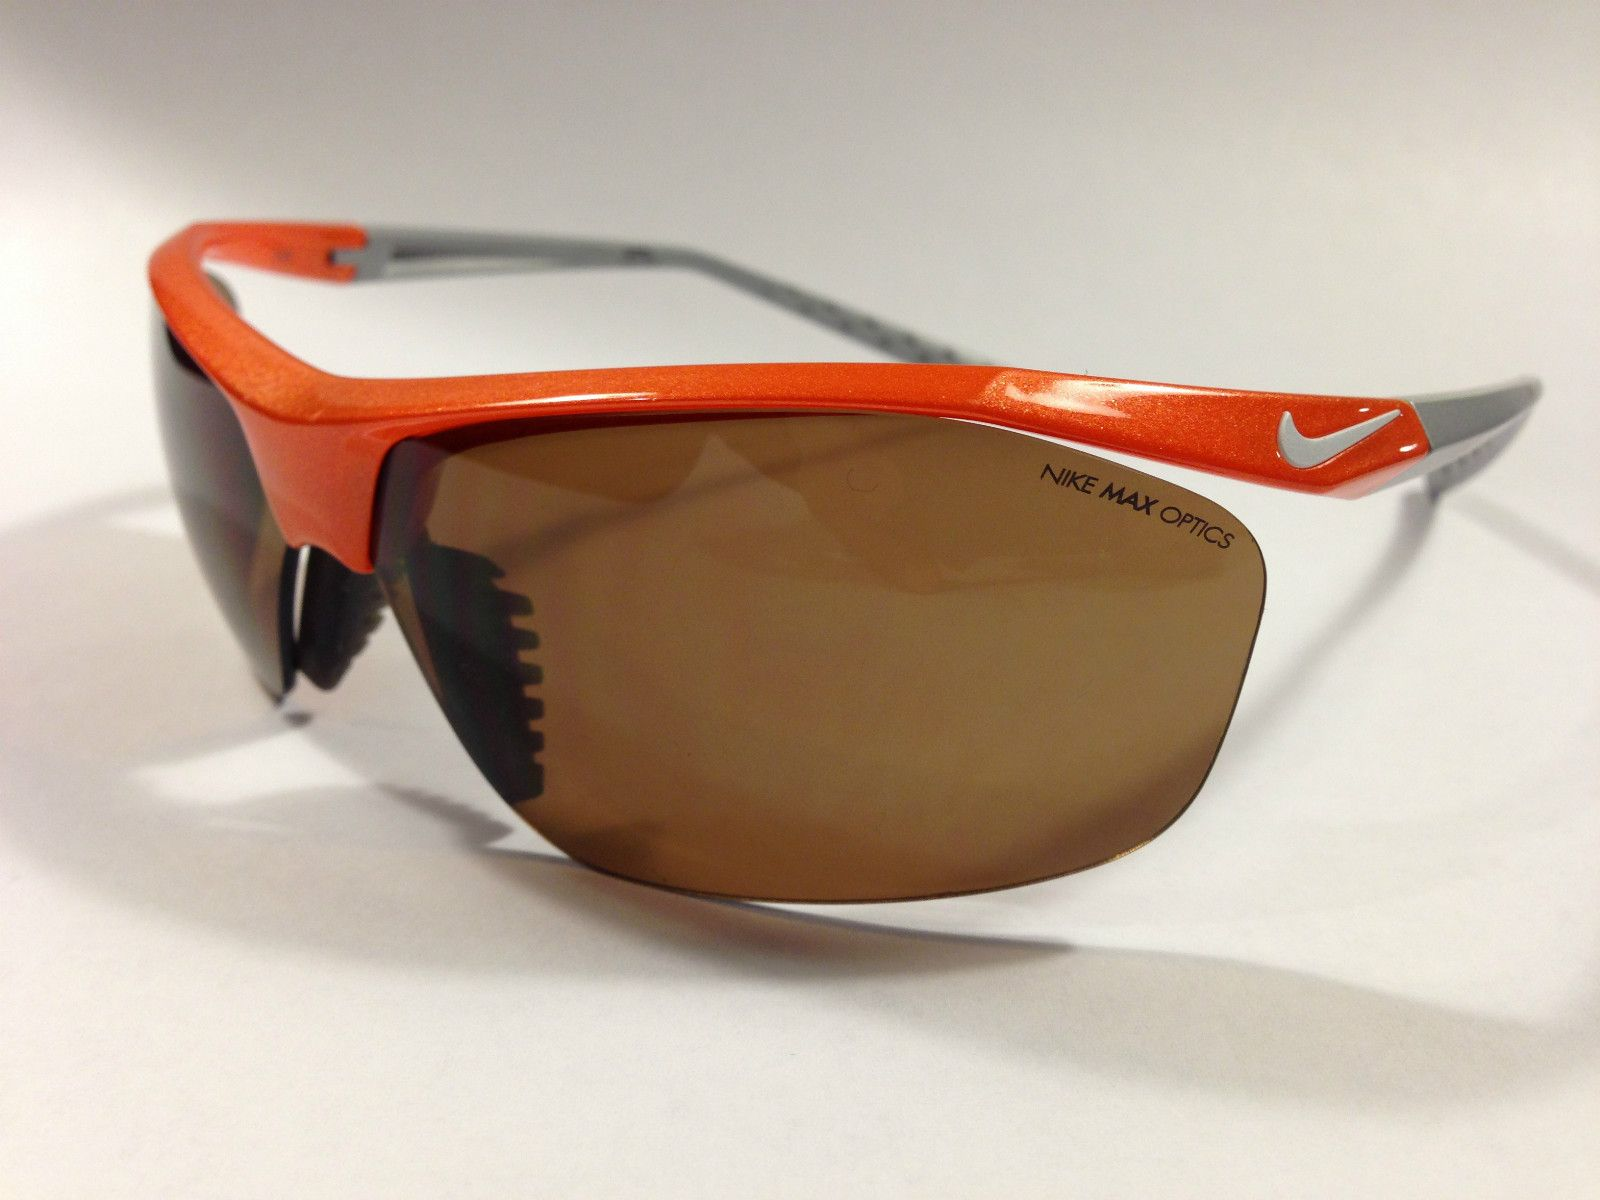 nike sunglasses max optics